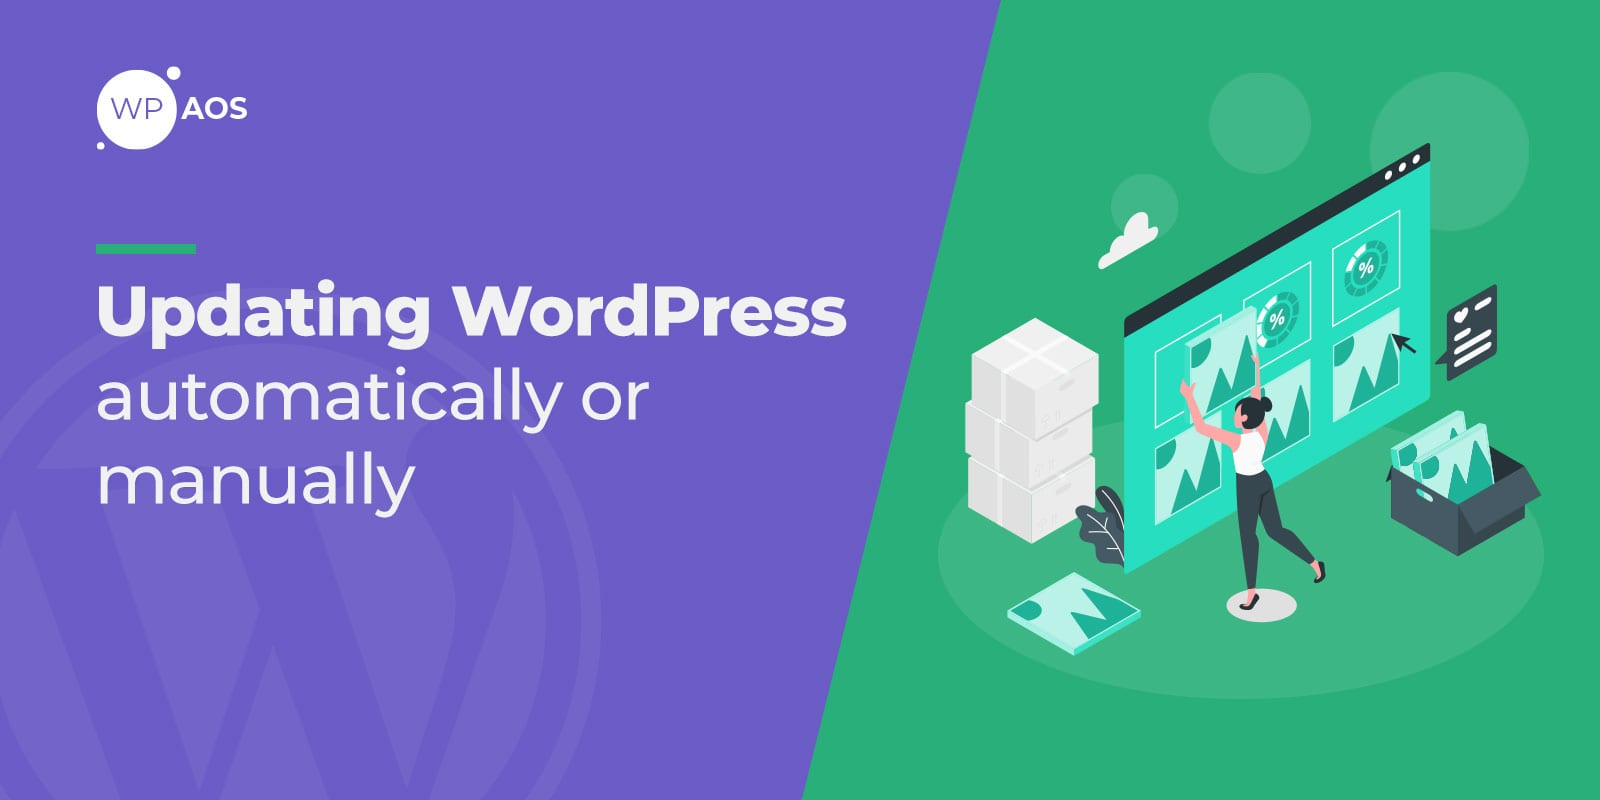 Updating WordPress, Websit Updates, wpaos